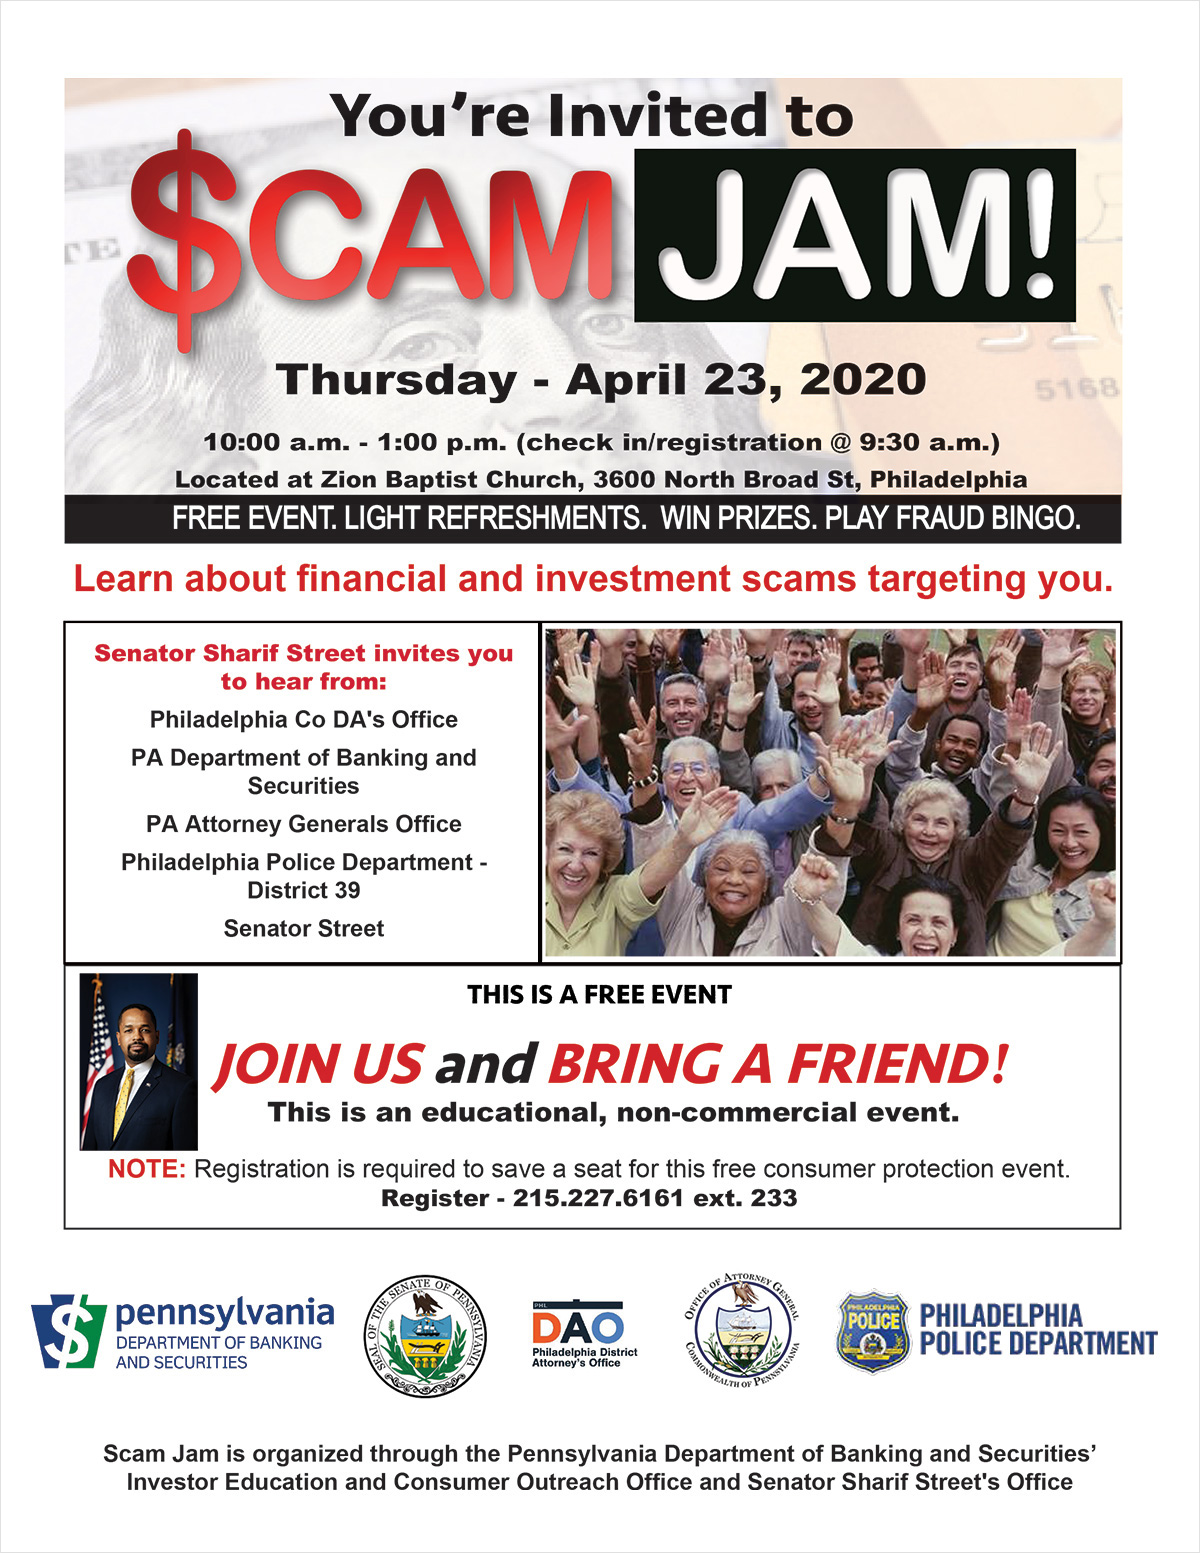 Scam Jam - Thursday - April 23, 2020